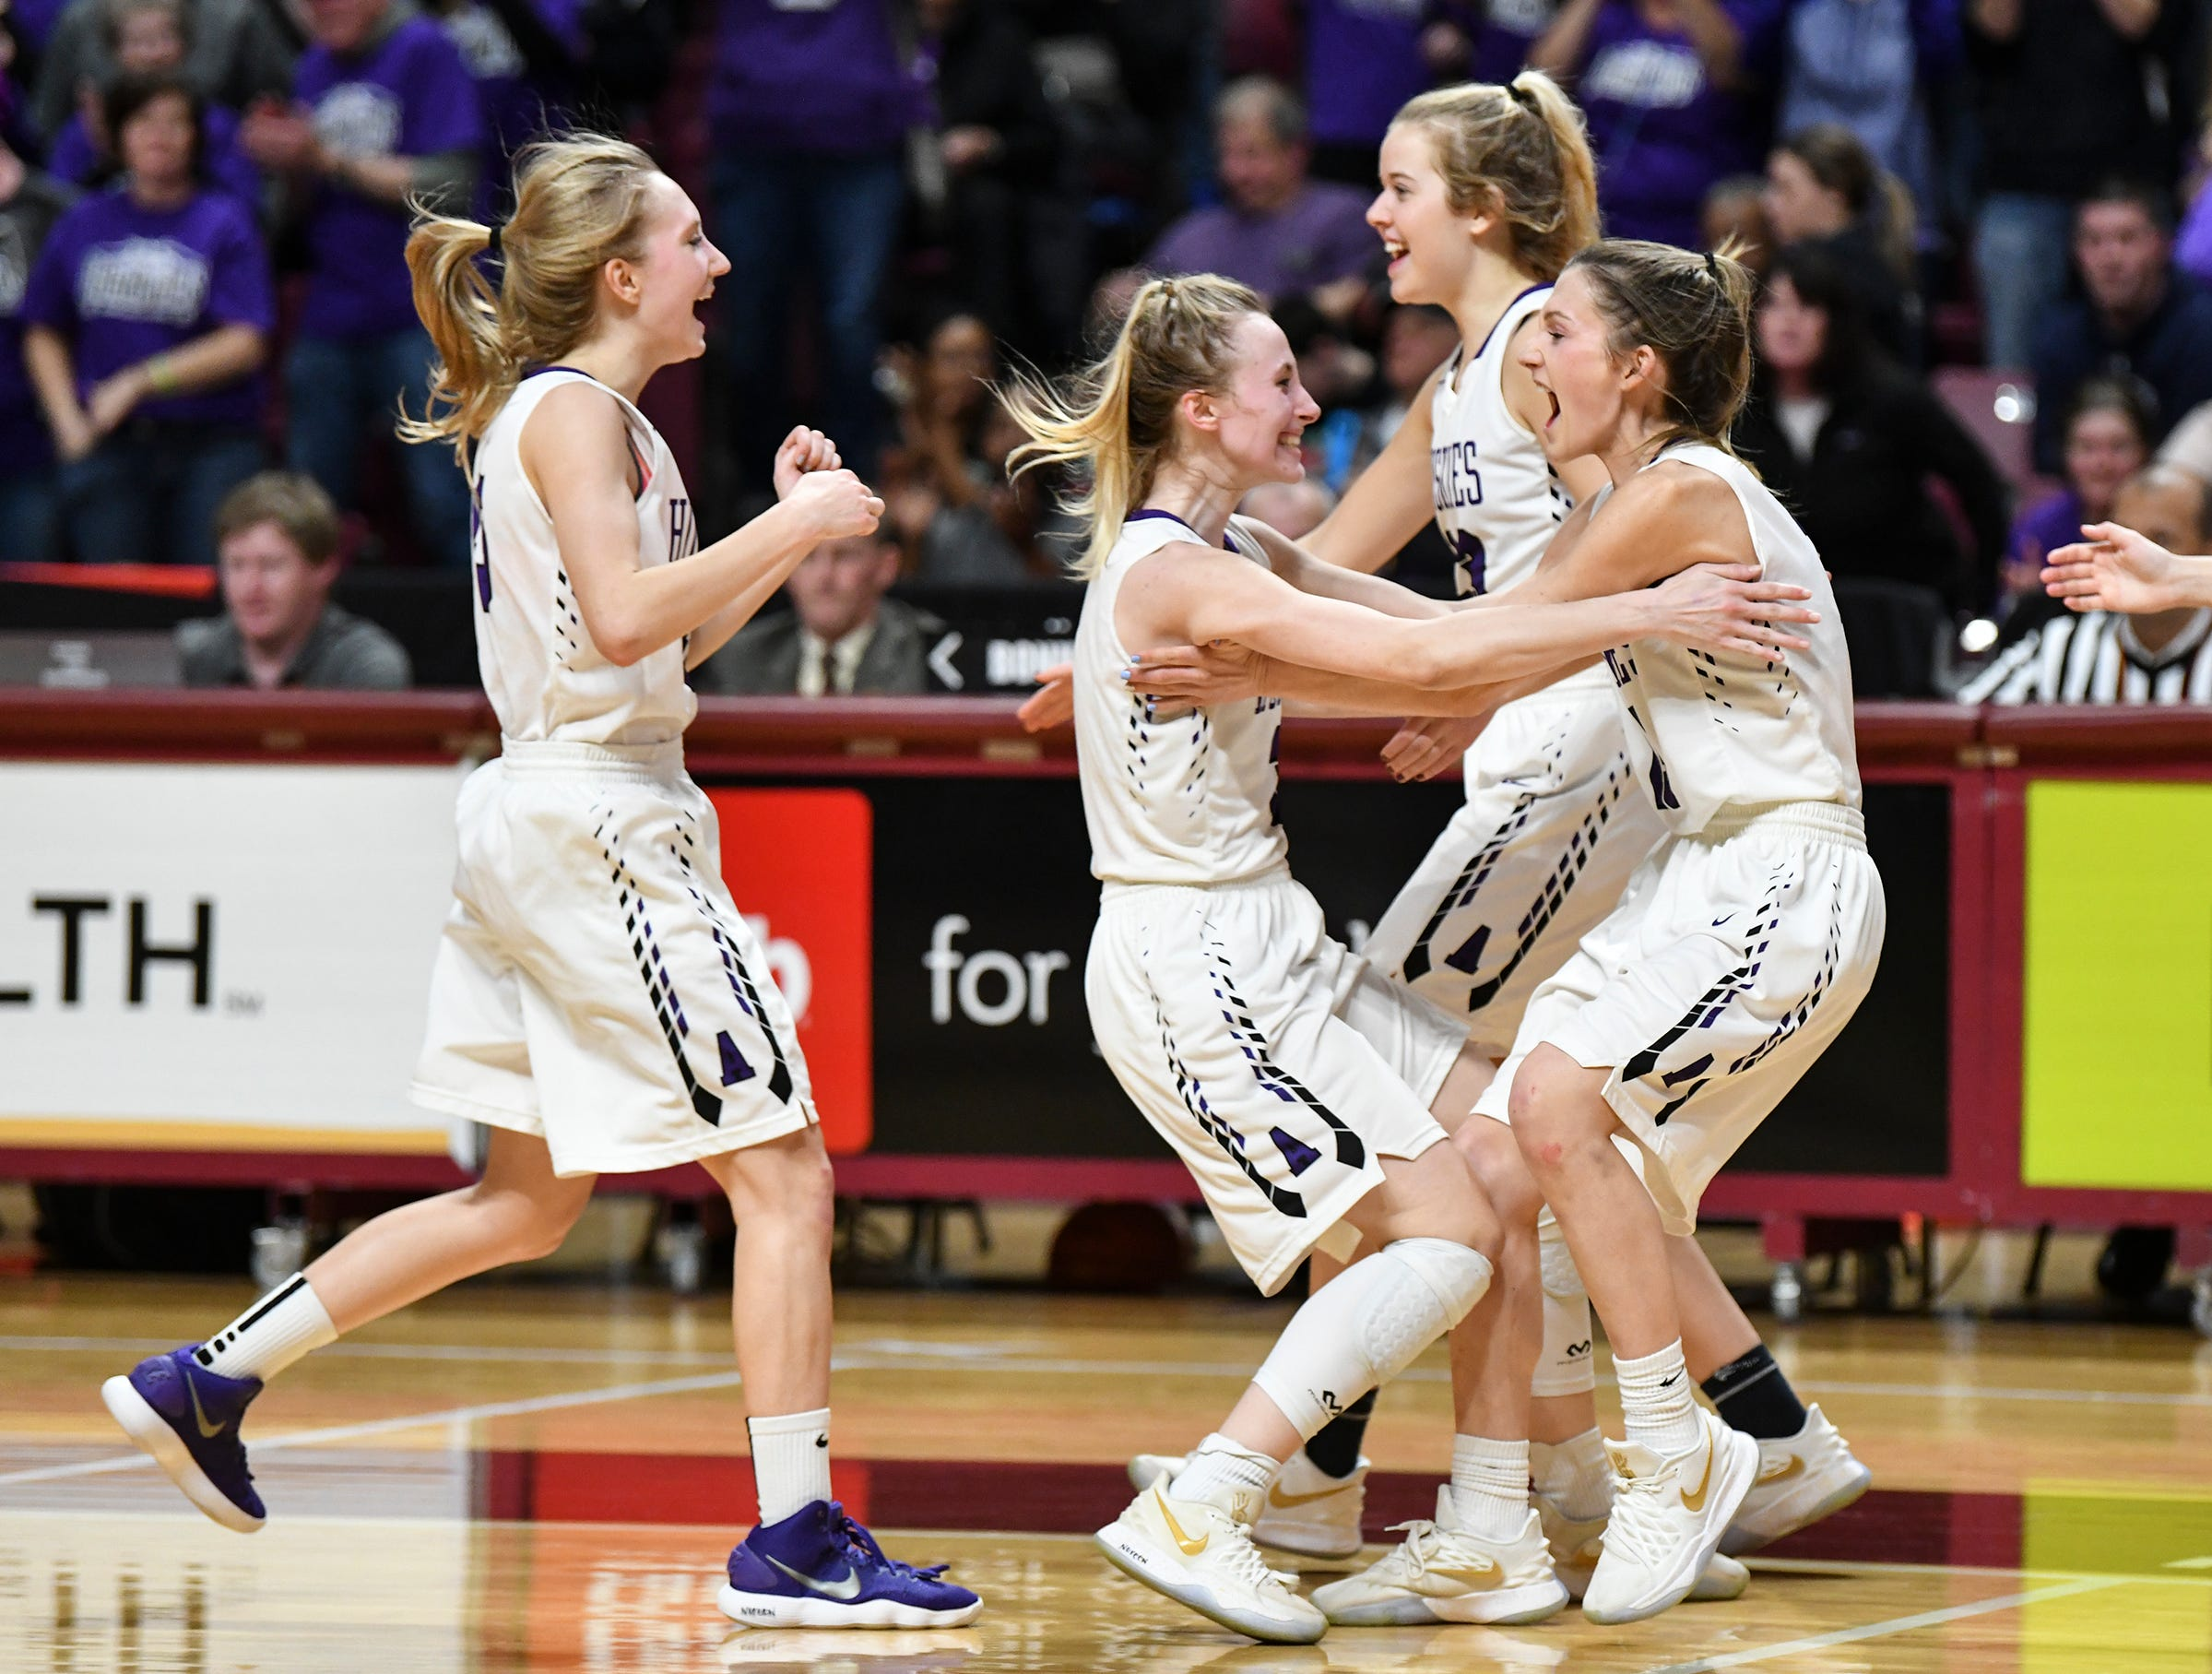 Albany players celebrate their 60-49 win during the state Class 2A quarterfinals game Wednesday, March 13, at the University of Minnesota in Minneapolis.